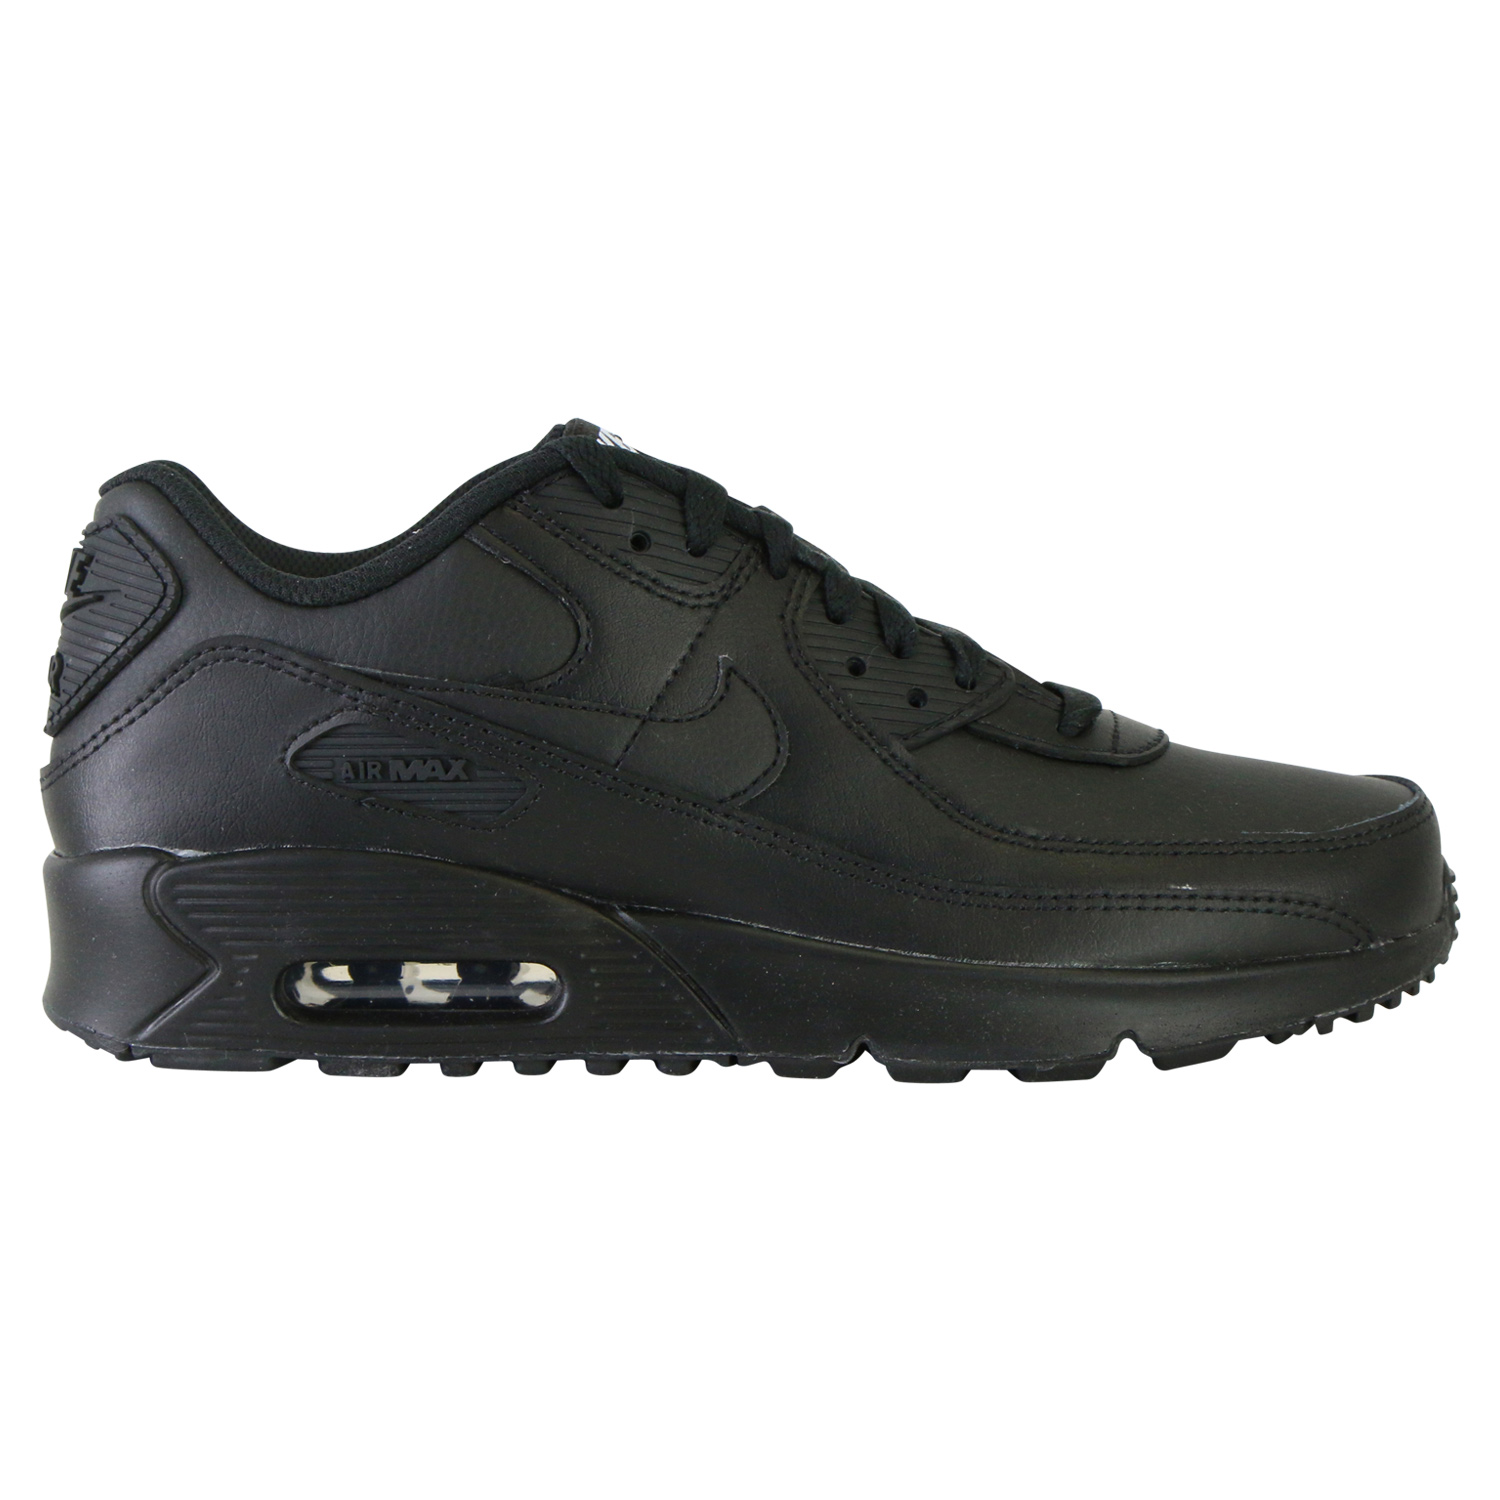 Details about Nike Air Max 90 SE Ultra premium GS Shoes Sneaker Kids Womens show original title